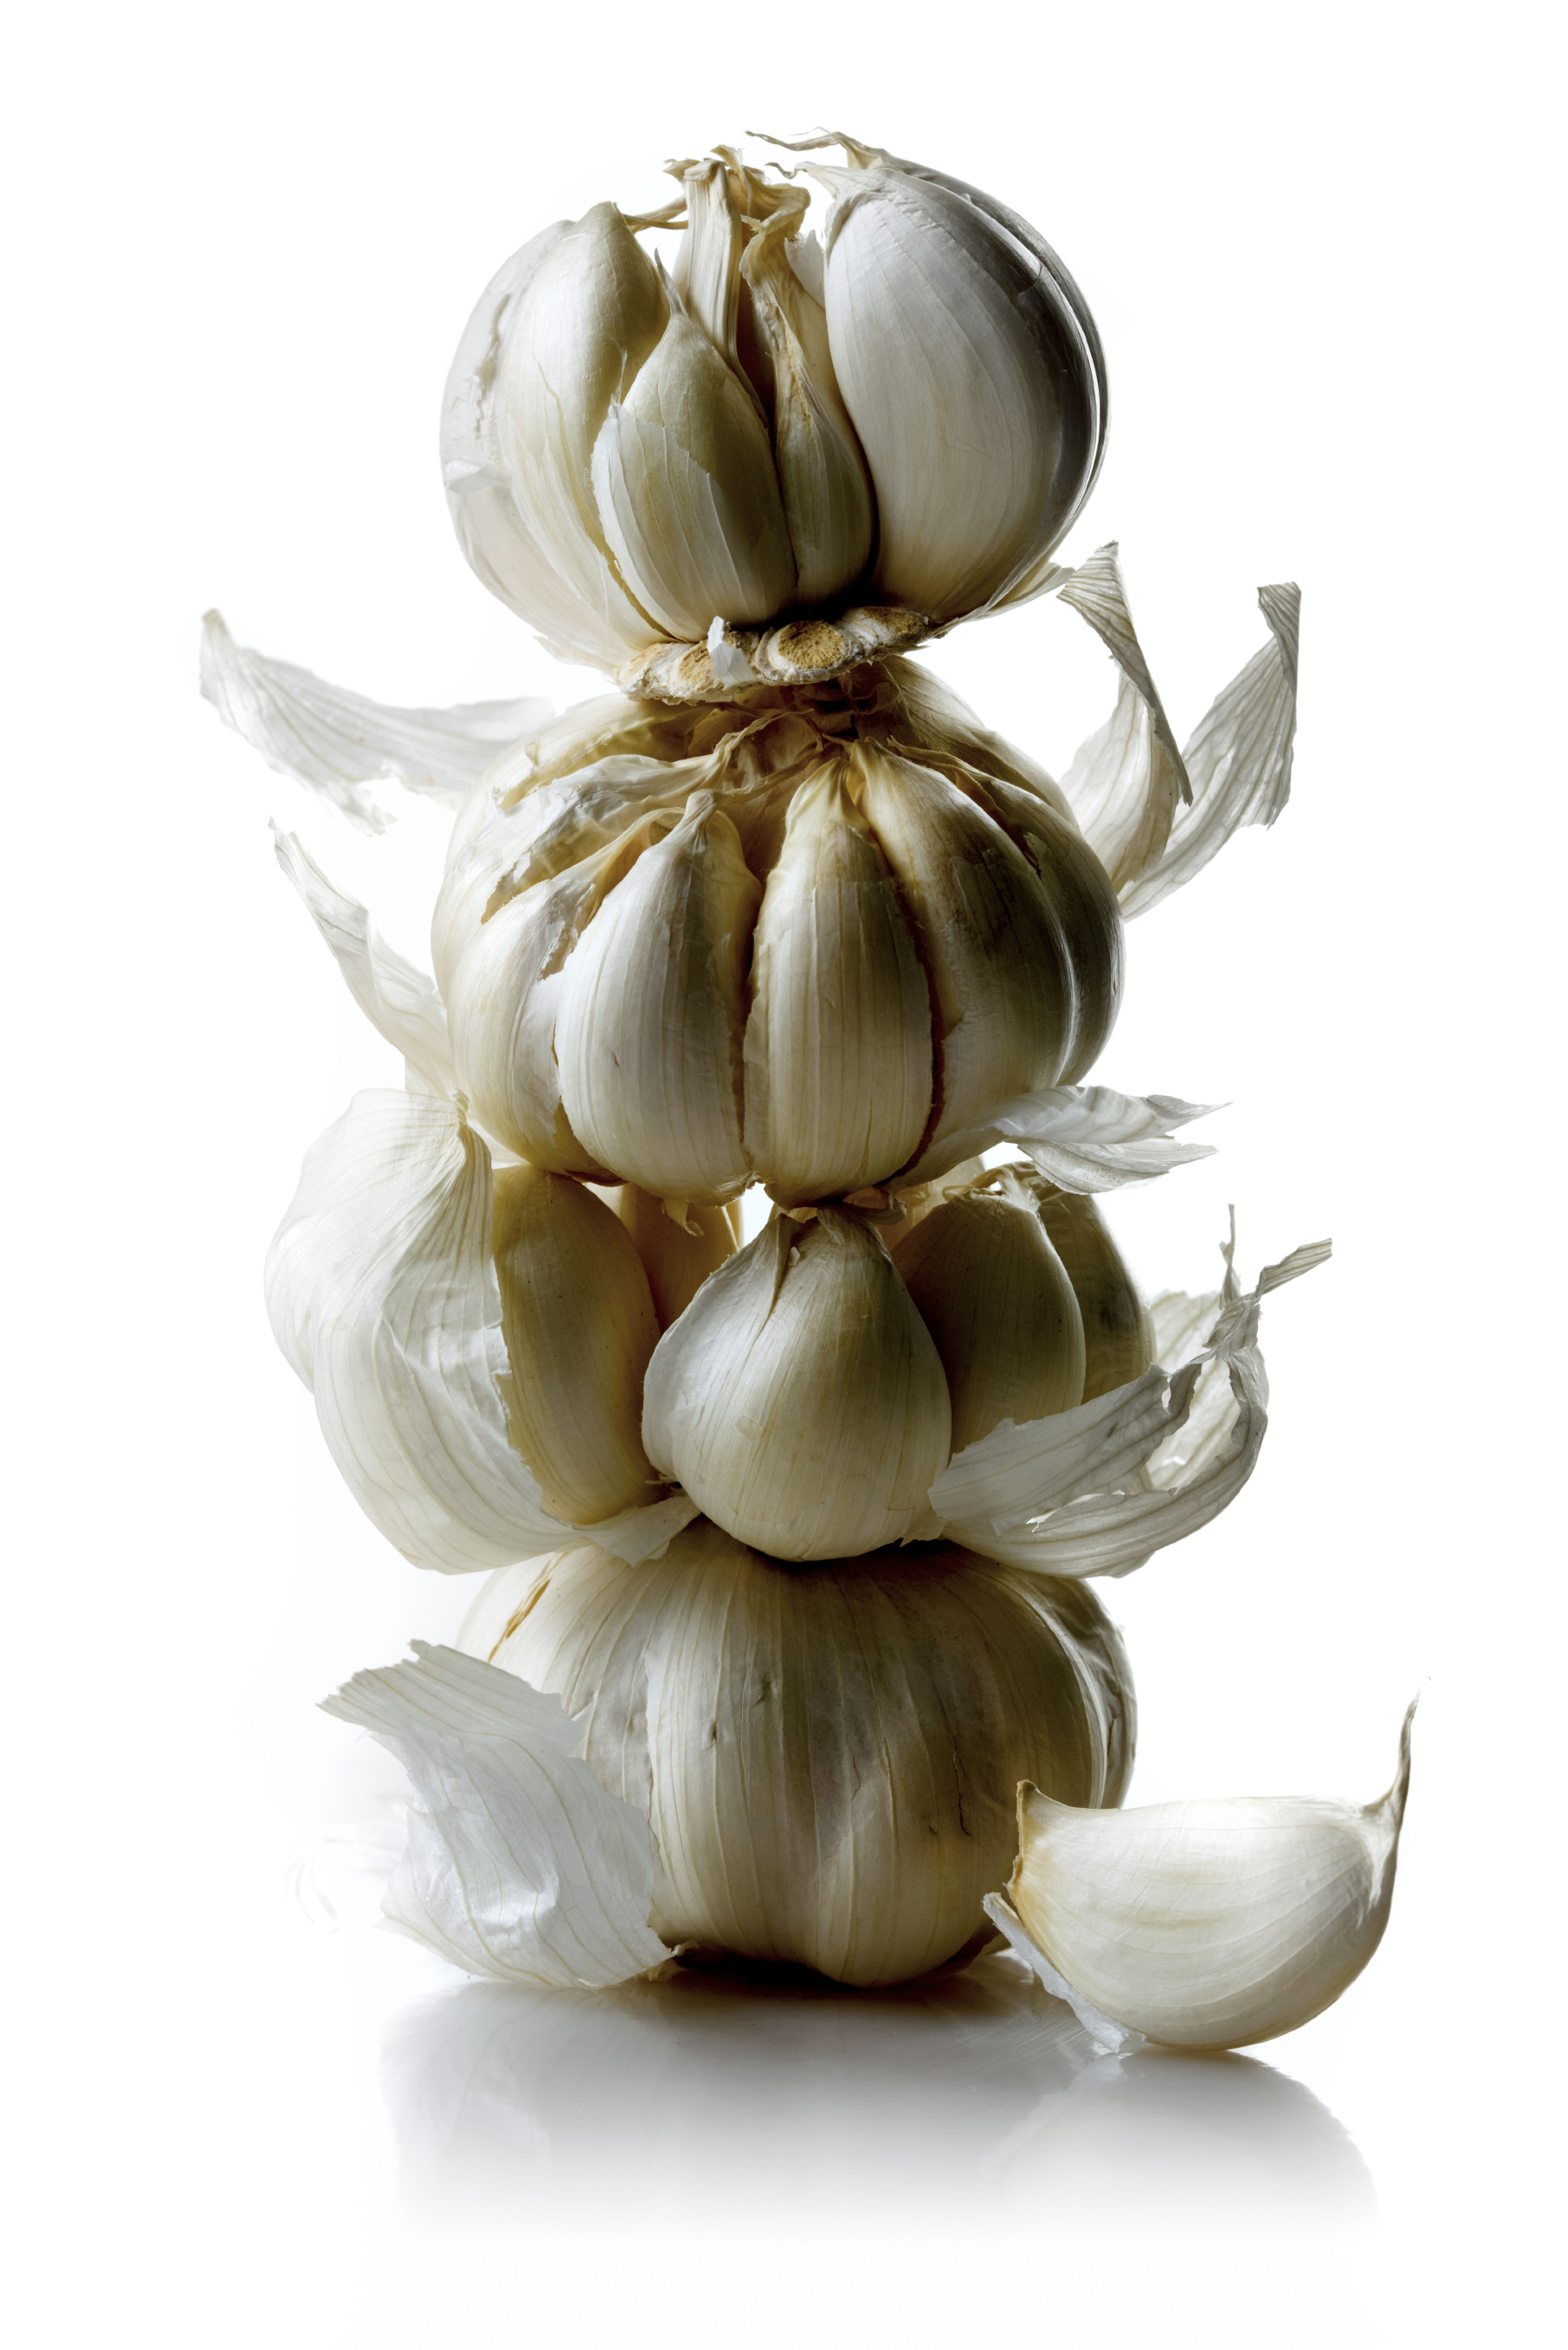 Garlic-tower